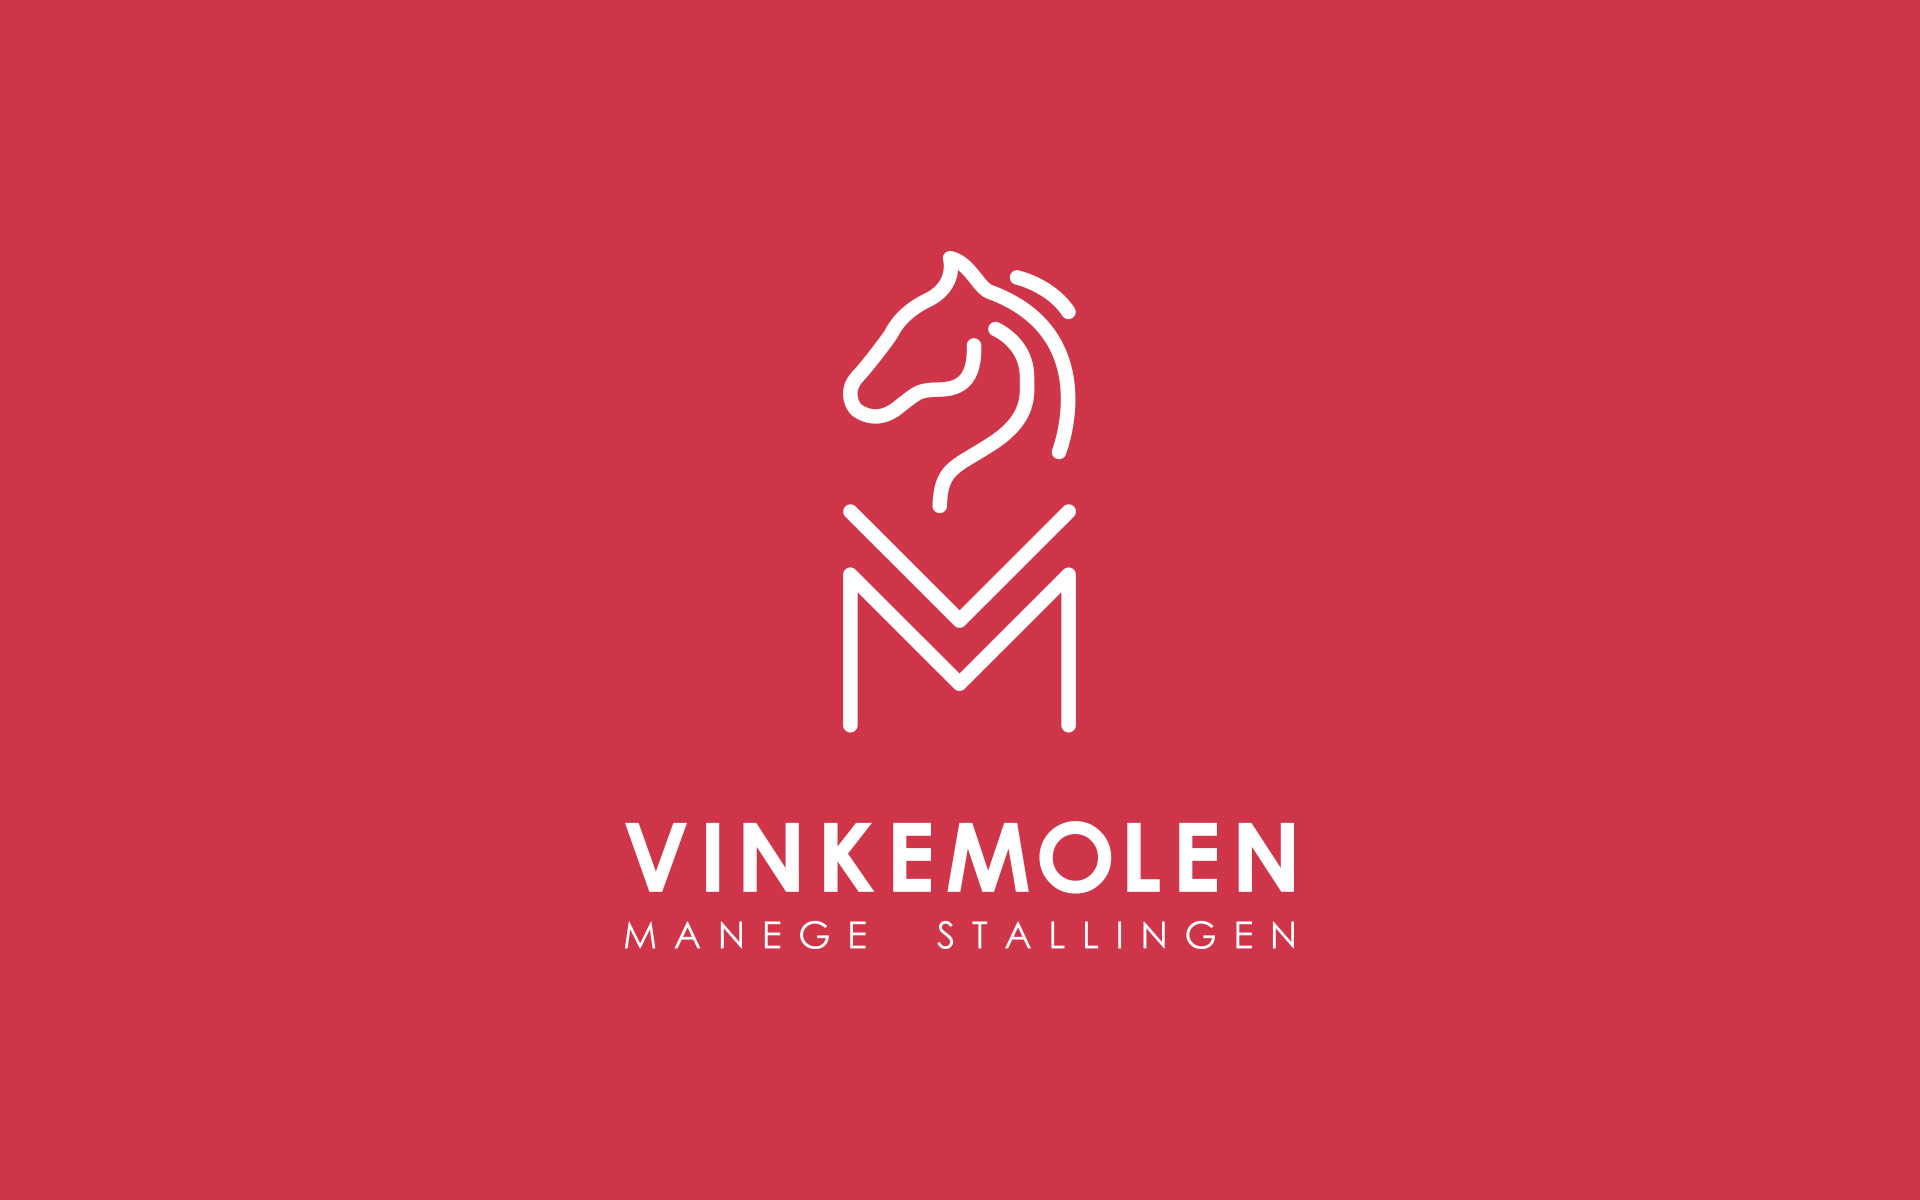 https://sconcept.be/wp-content/uploads/2019/07/vinkemolen-2.jpg